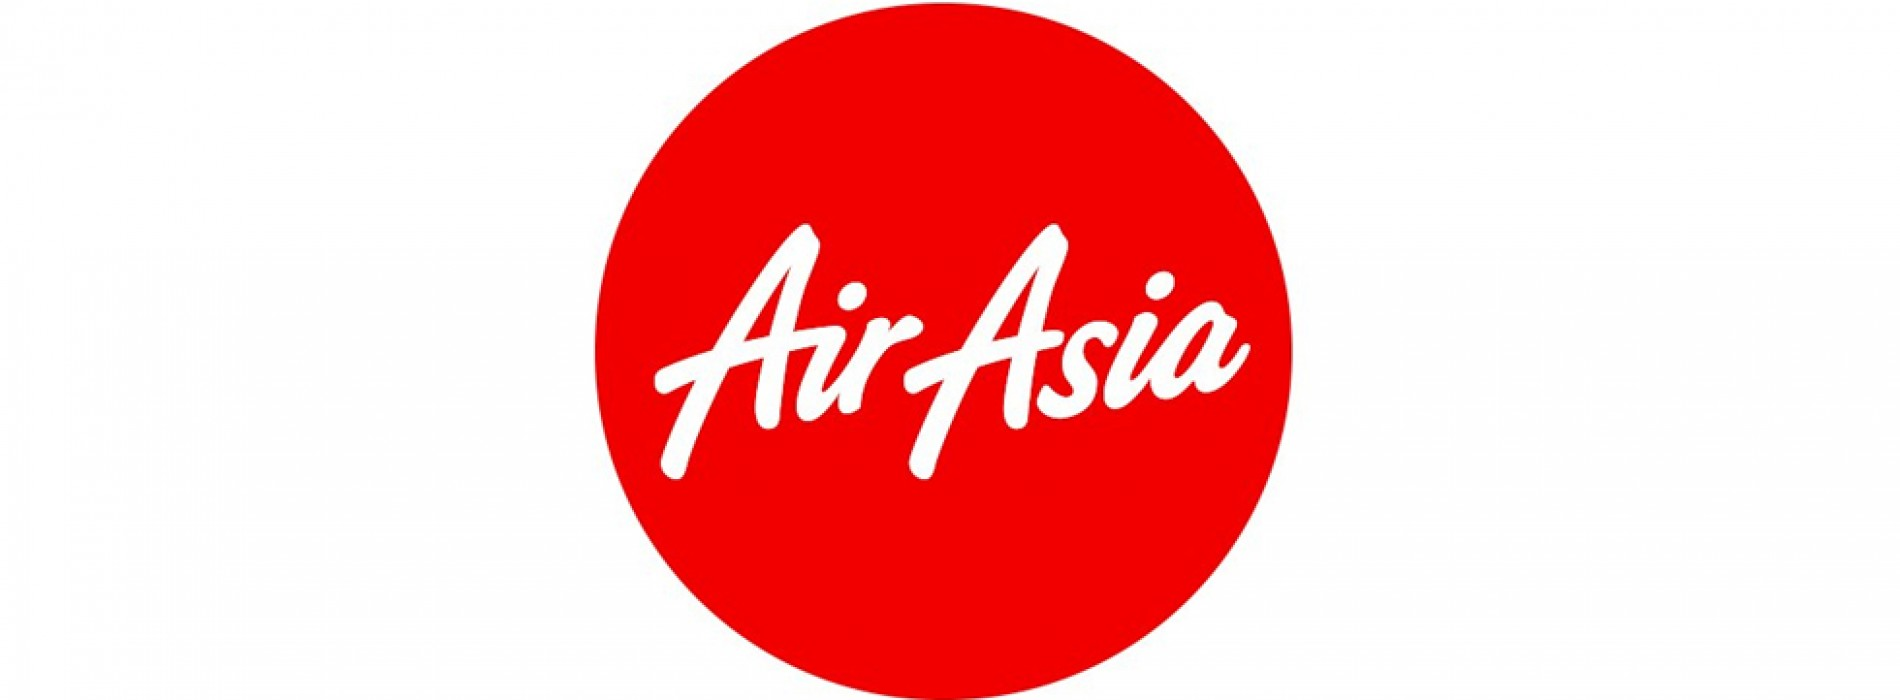 AirAsia India adds one A320 aircraft to launch 3 new routes